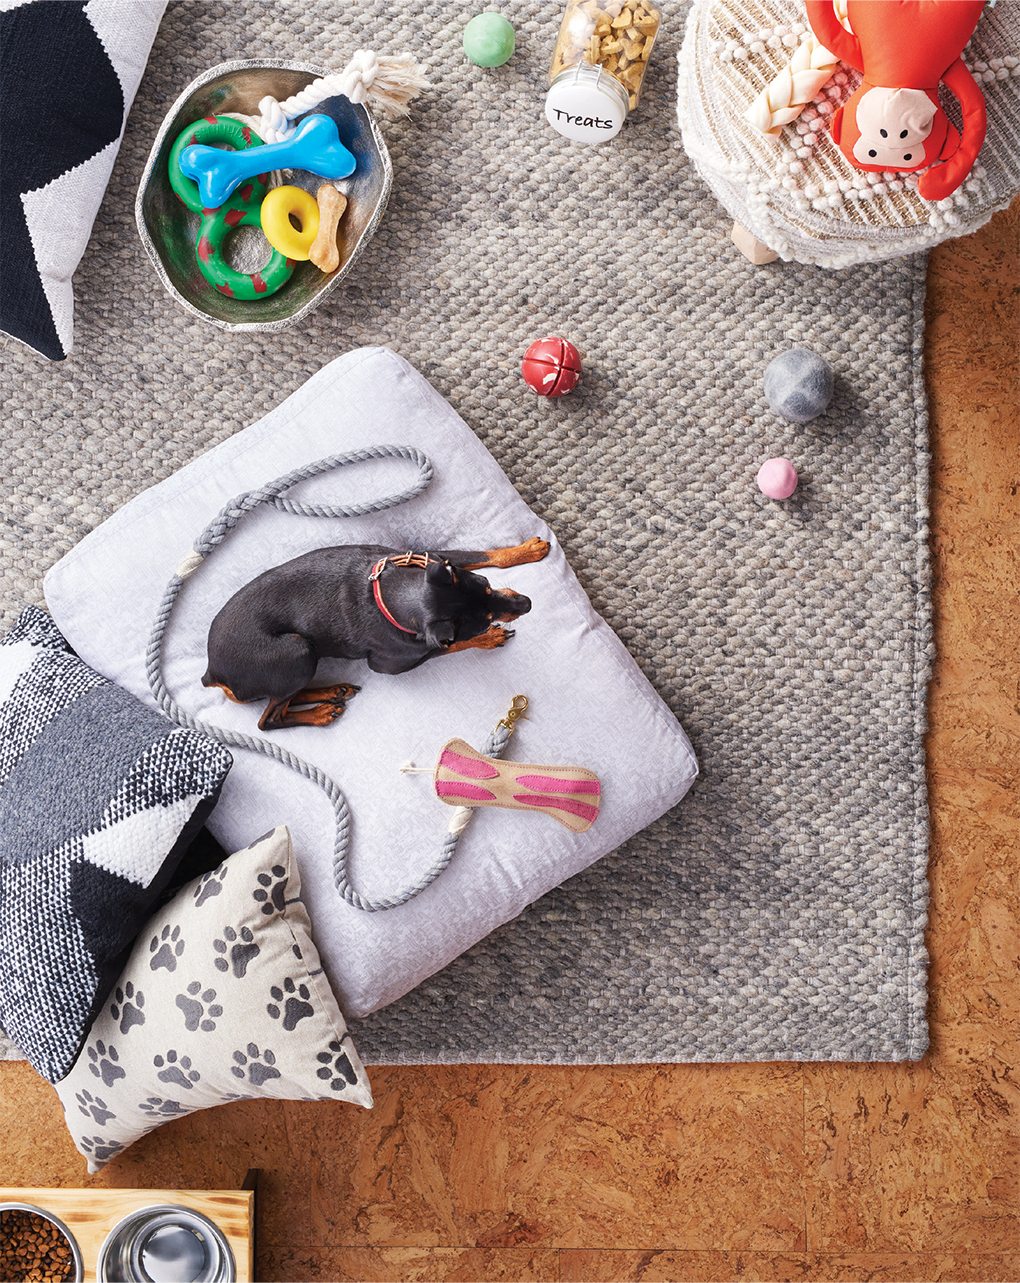 A top-down view of a miniature pinscher laying on a pillow next to holiday gift ideas for your pet den, including a rug, metallic bowl, treat container, leash, dog bed and more.